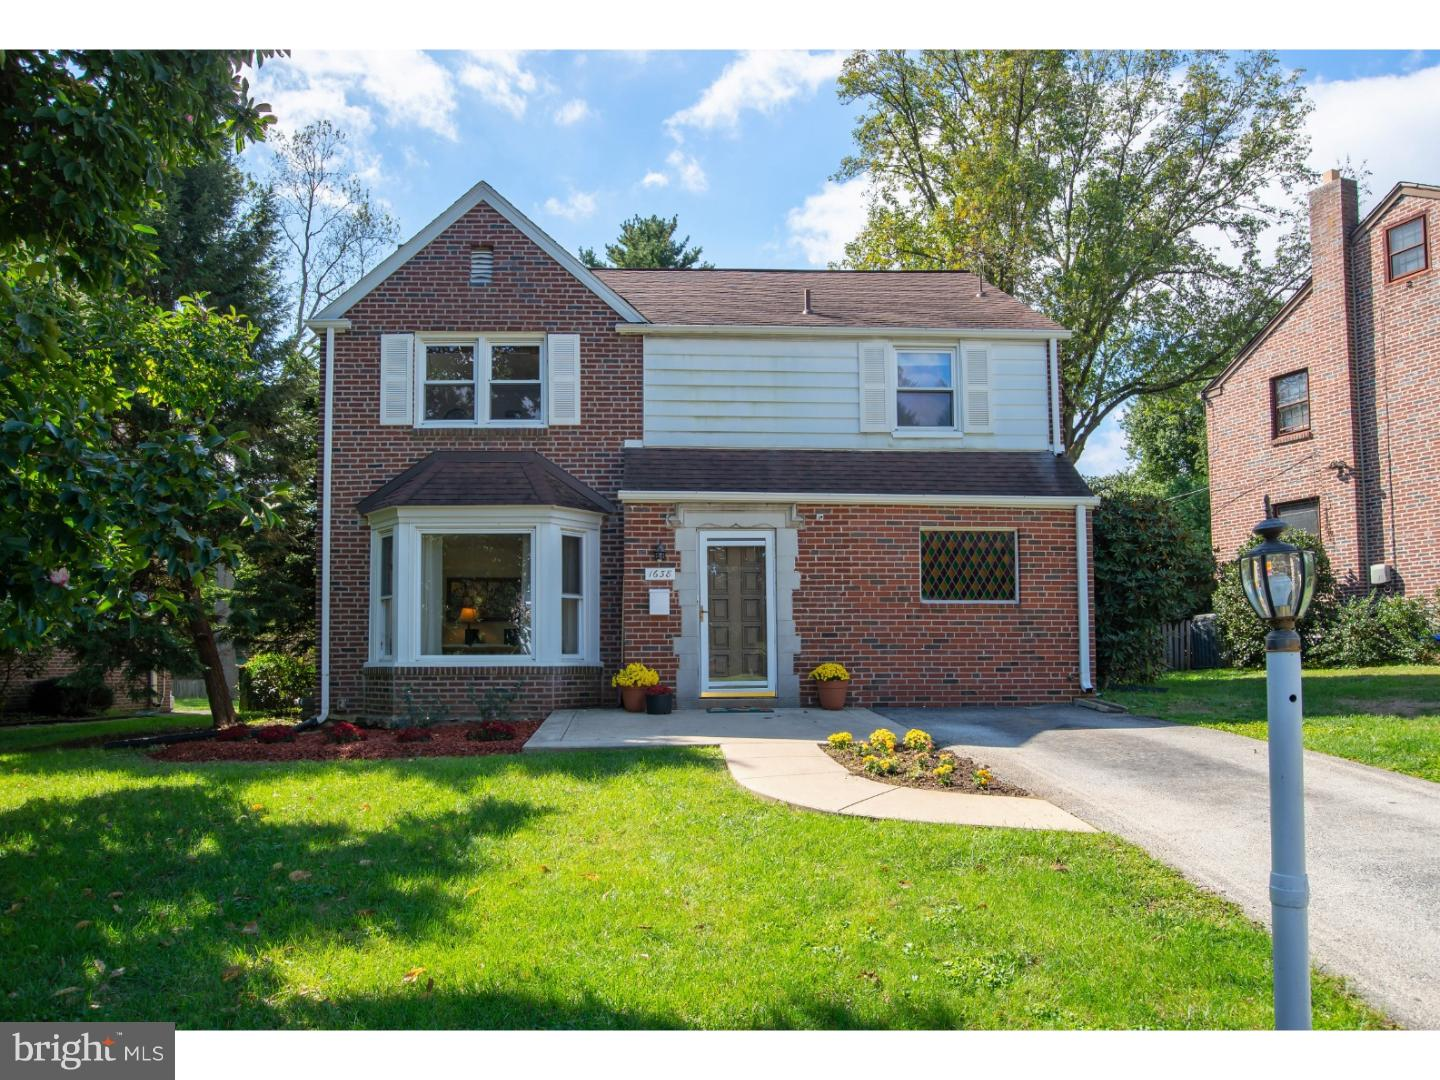 1638 Surrey Lane Havertown, PA 19083